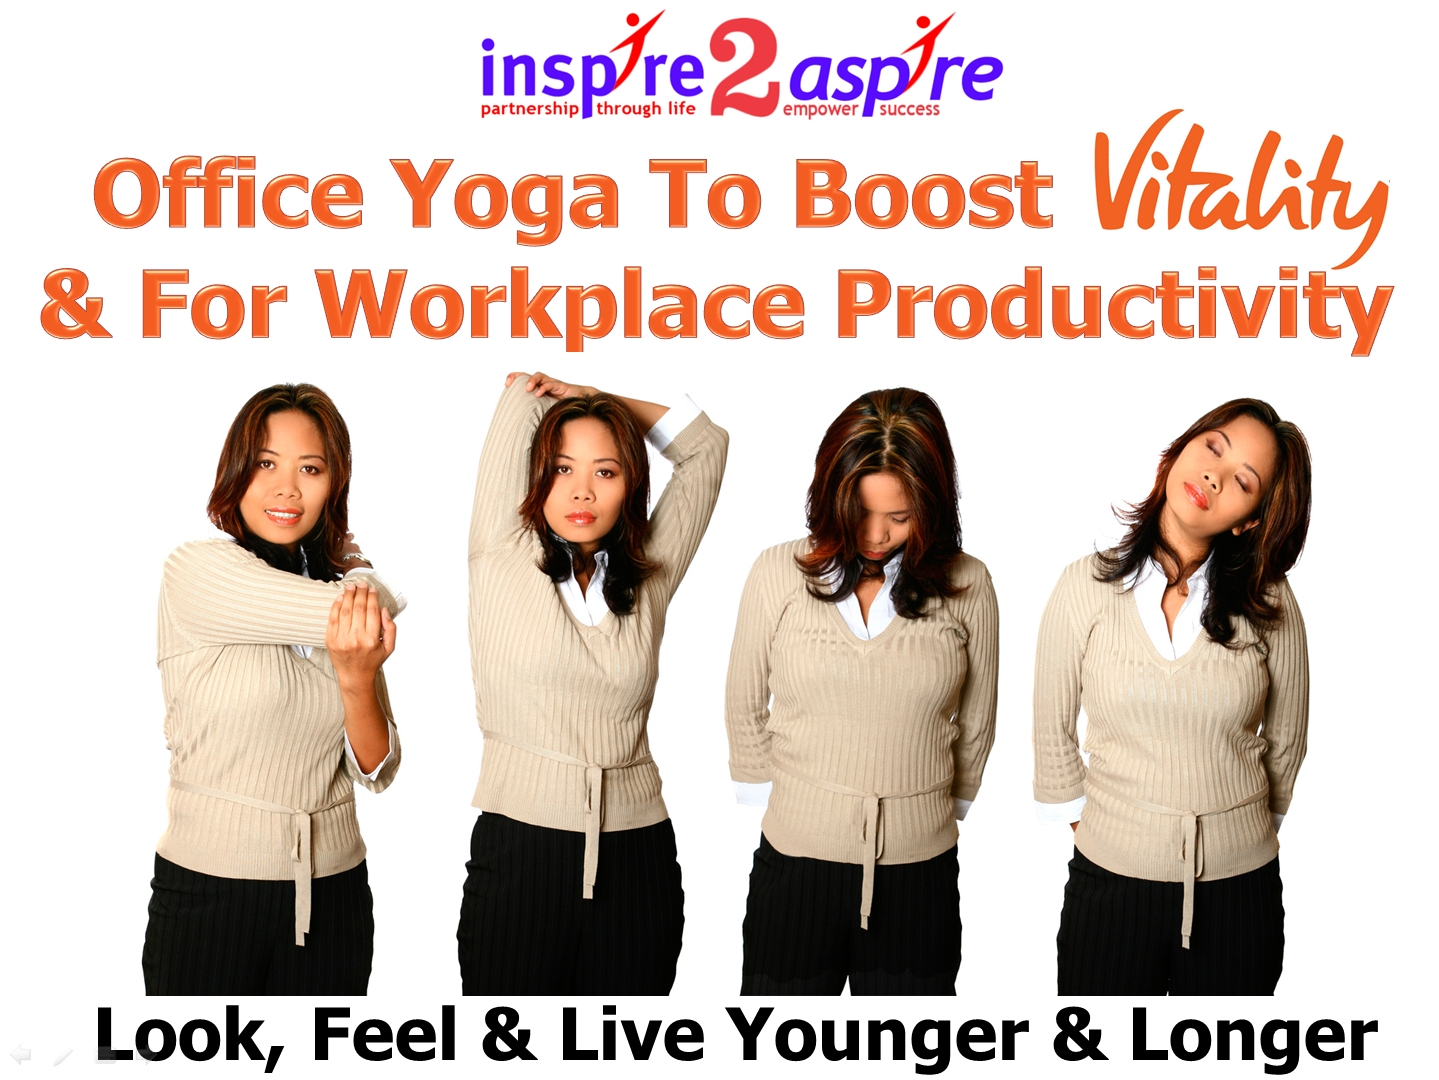 Office Yoga To Boost Vitality